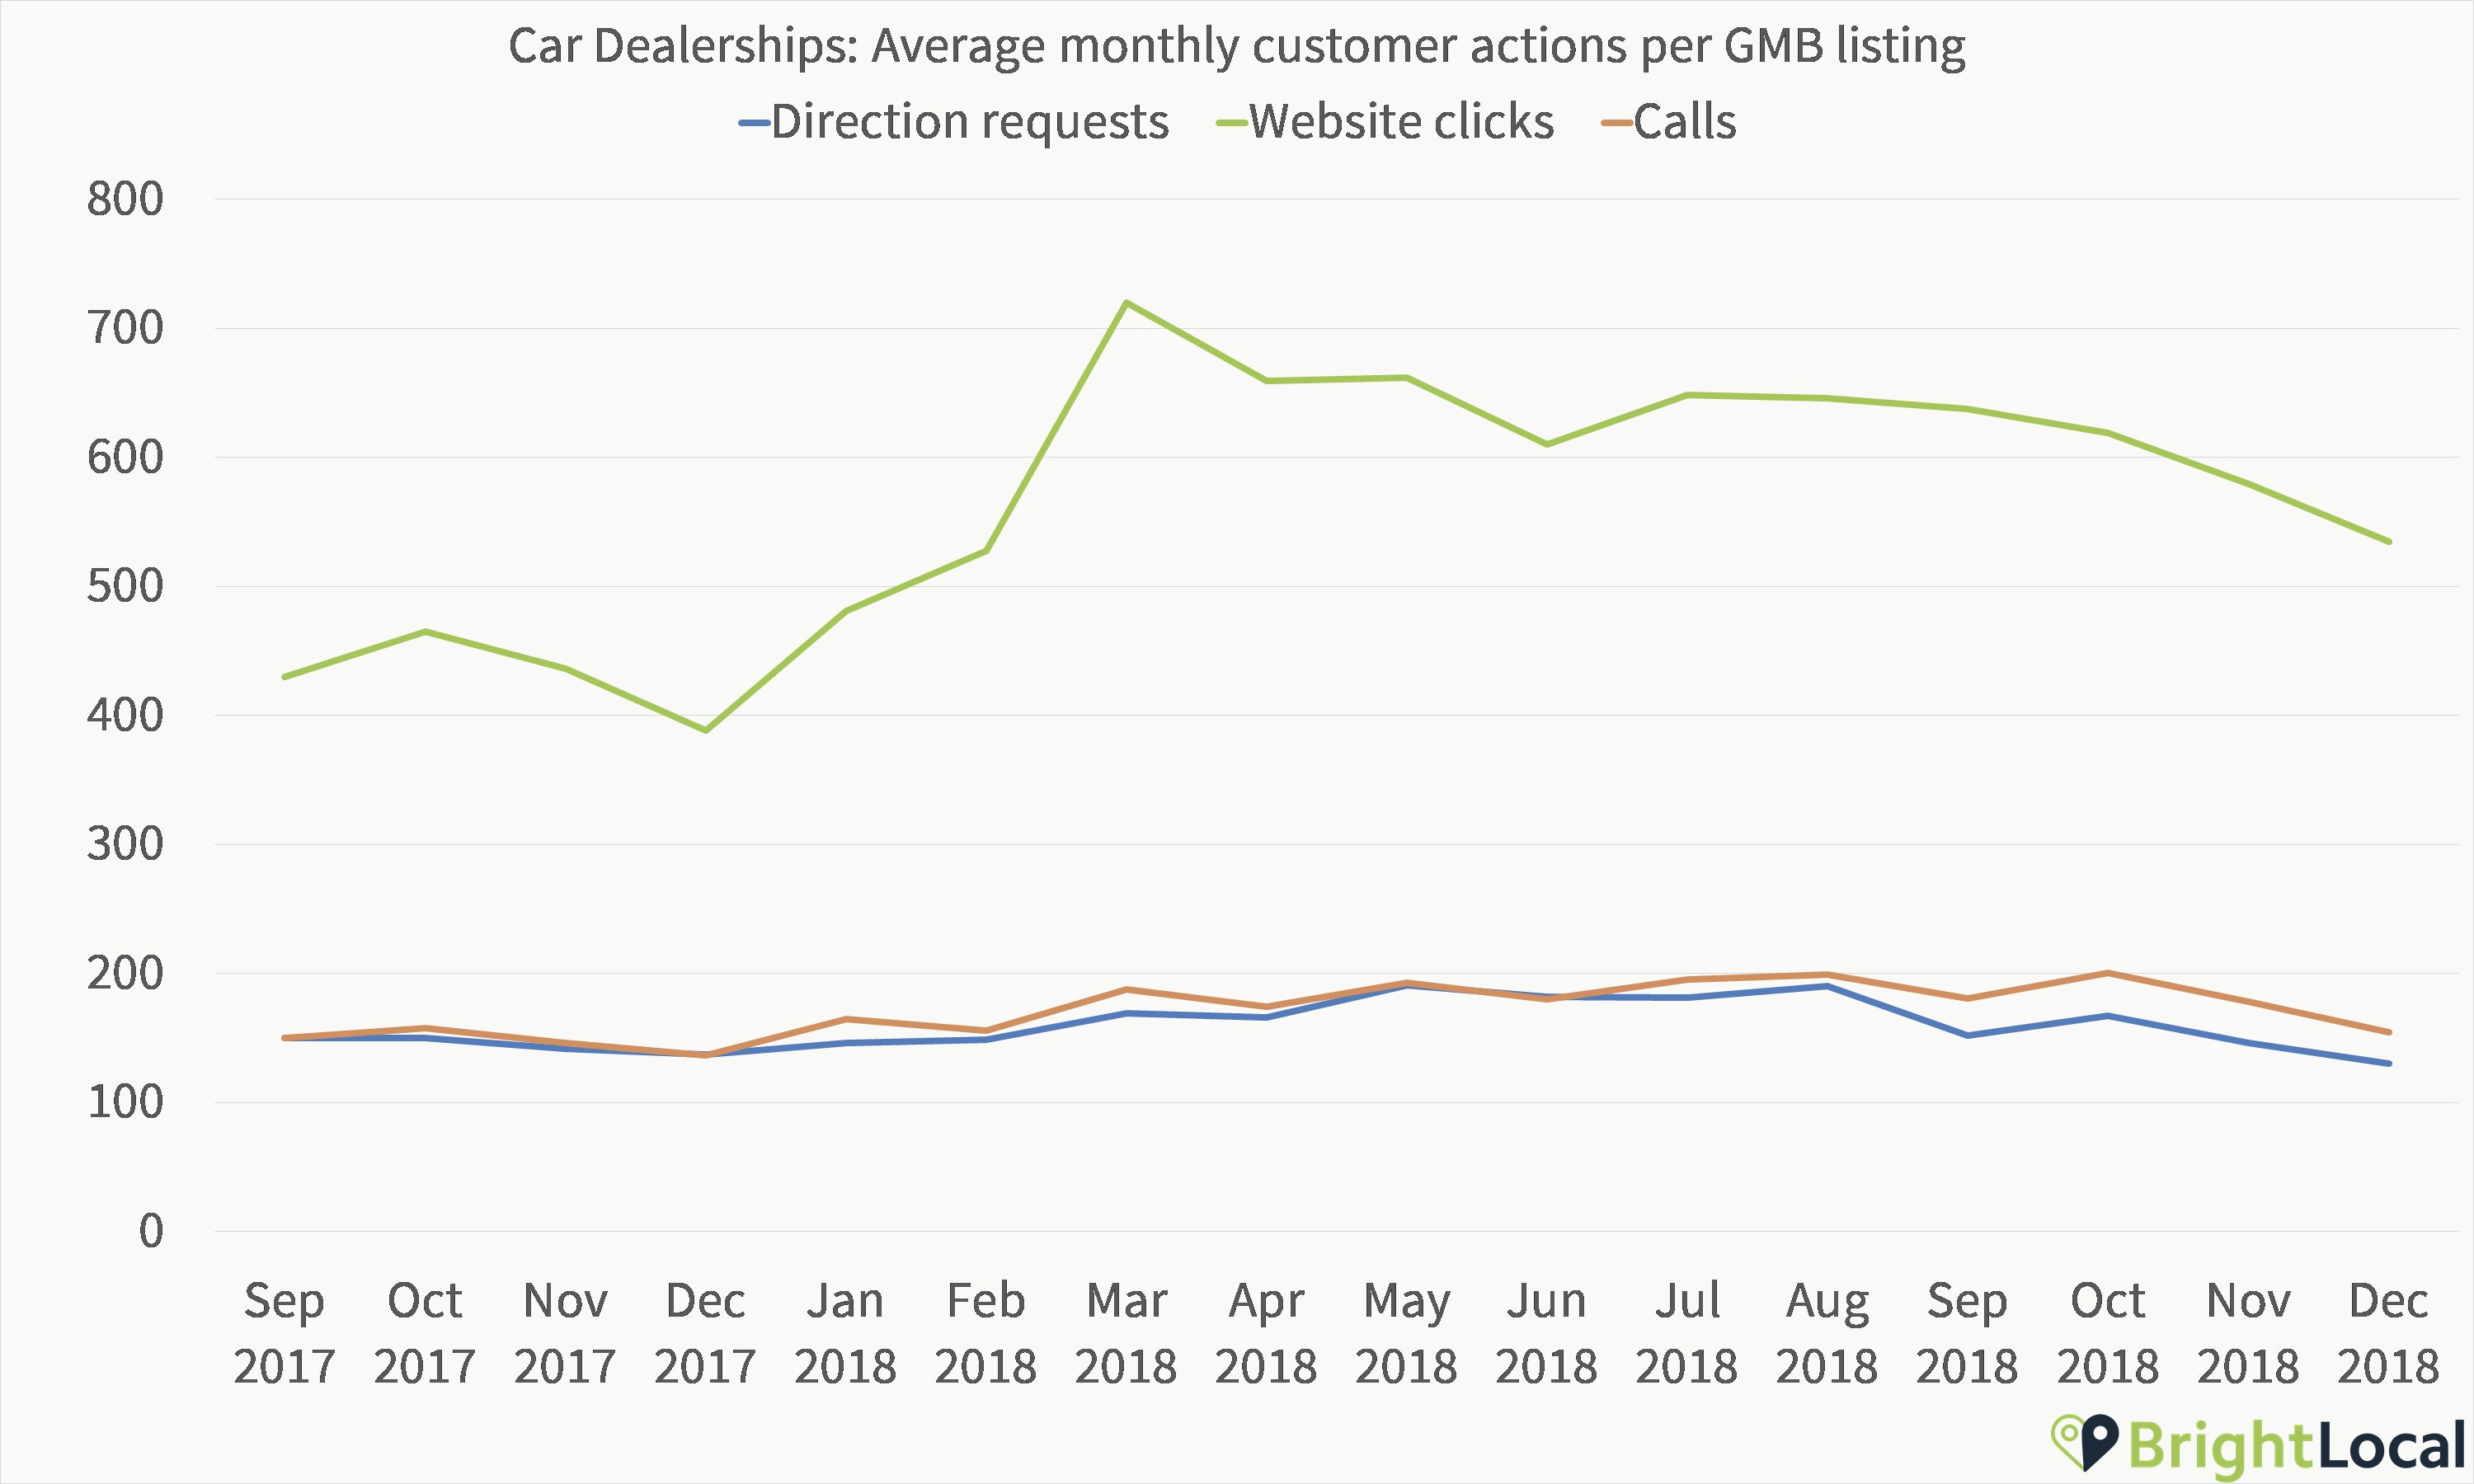 Car dealerships GMB Insights Customer Actions over time